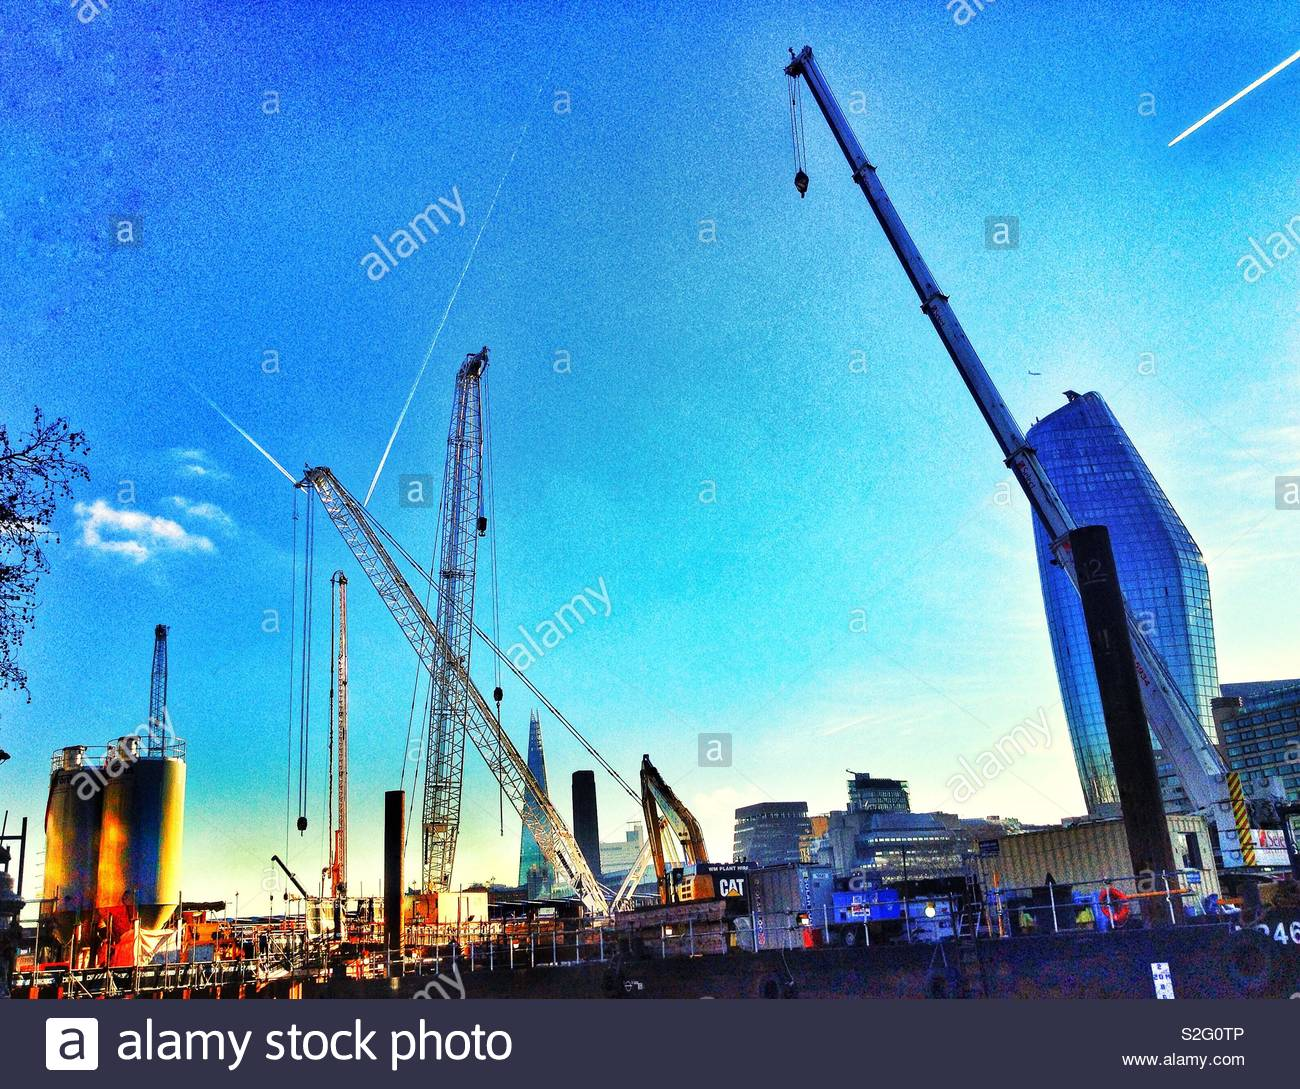 Construction work on the river Thames near Blackfriars bridge in London building a new super sewer - Stock Image